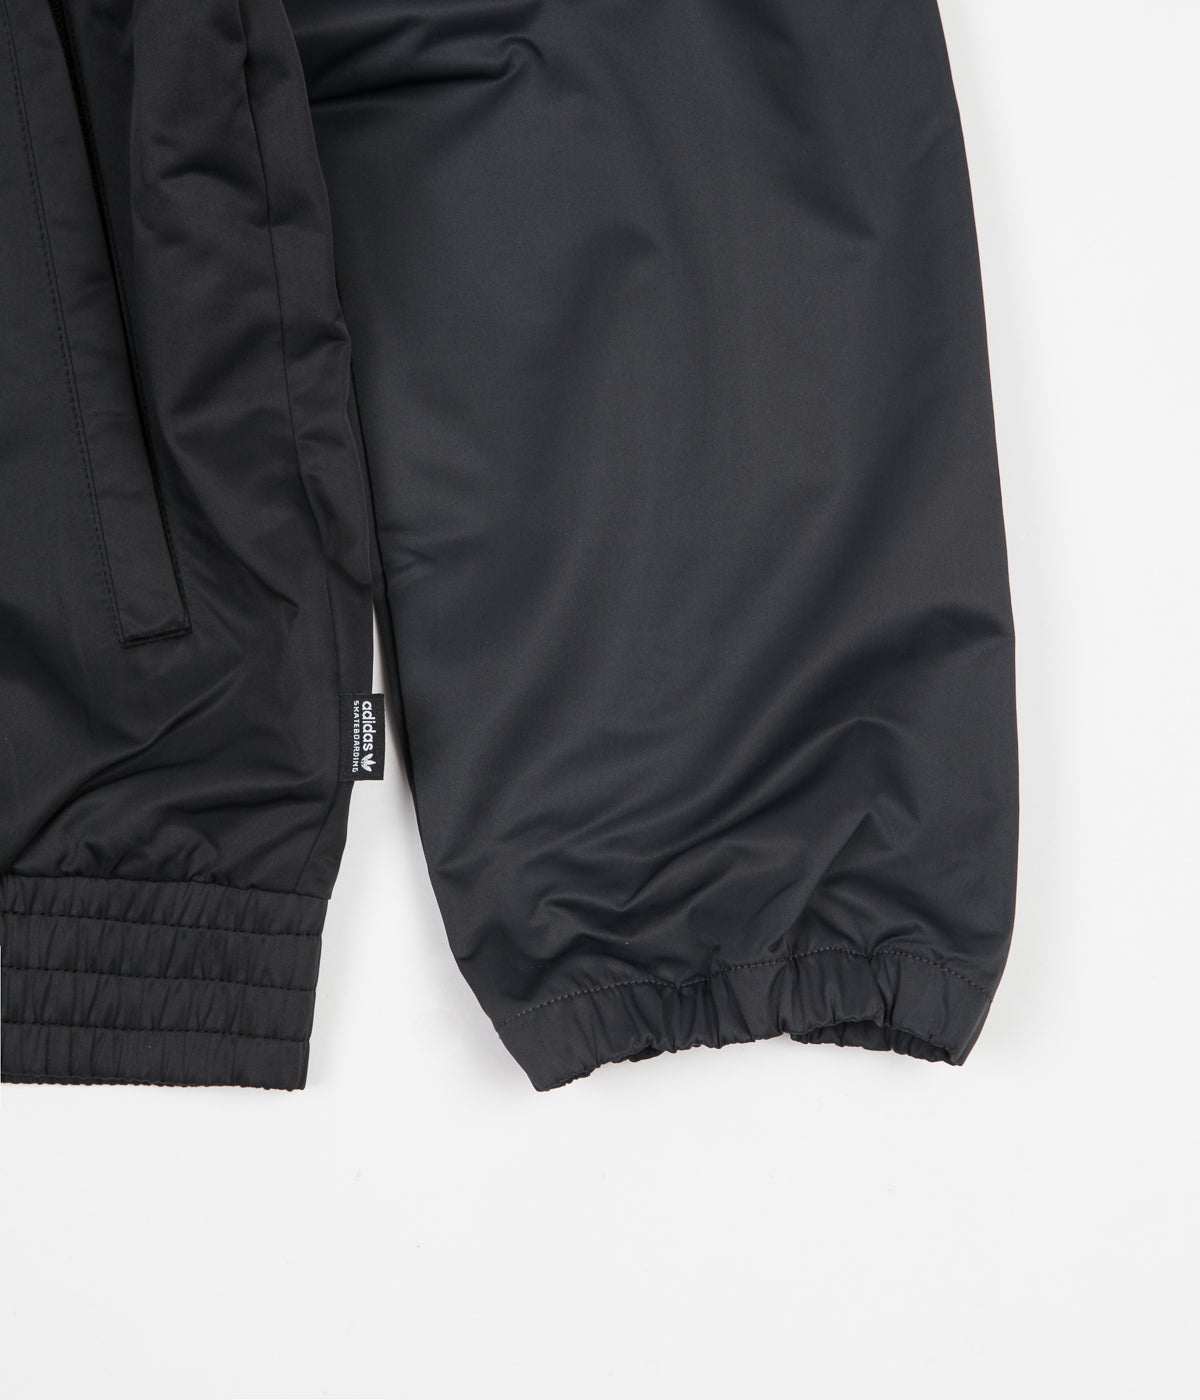 Adidas x Numbers Edition Track Jacket - Black / Grey Five / Carbon